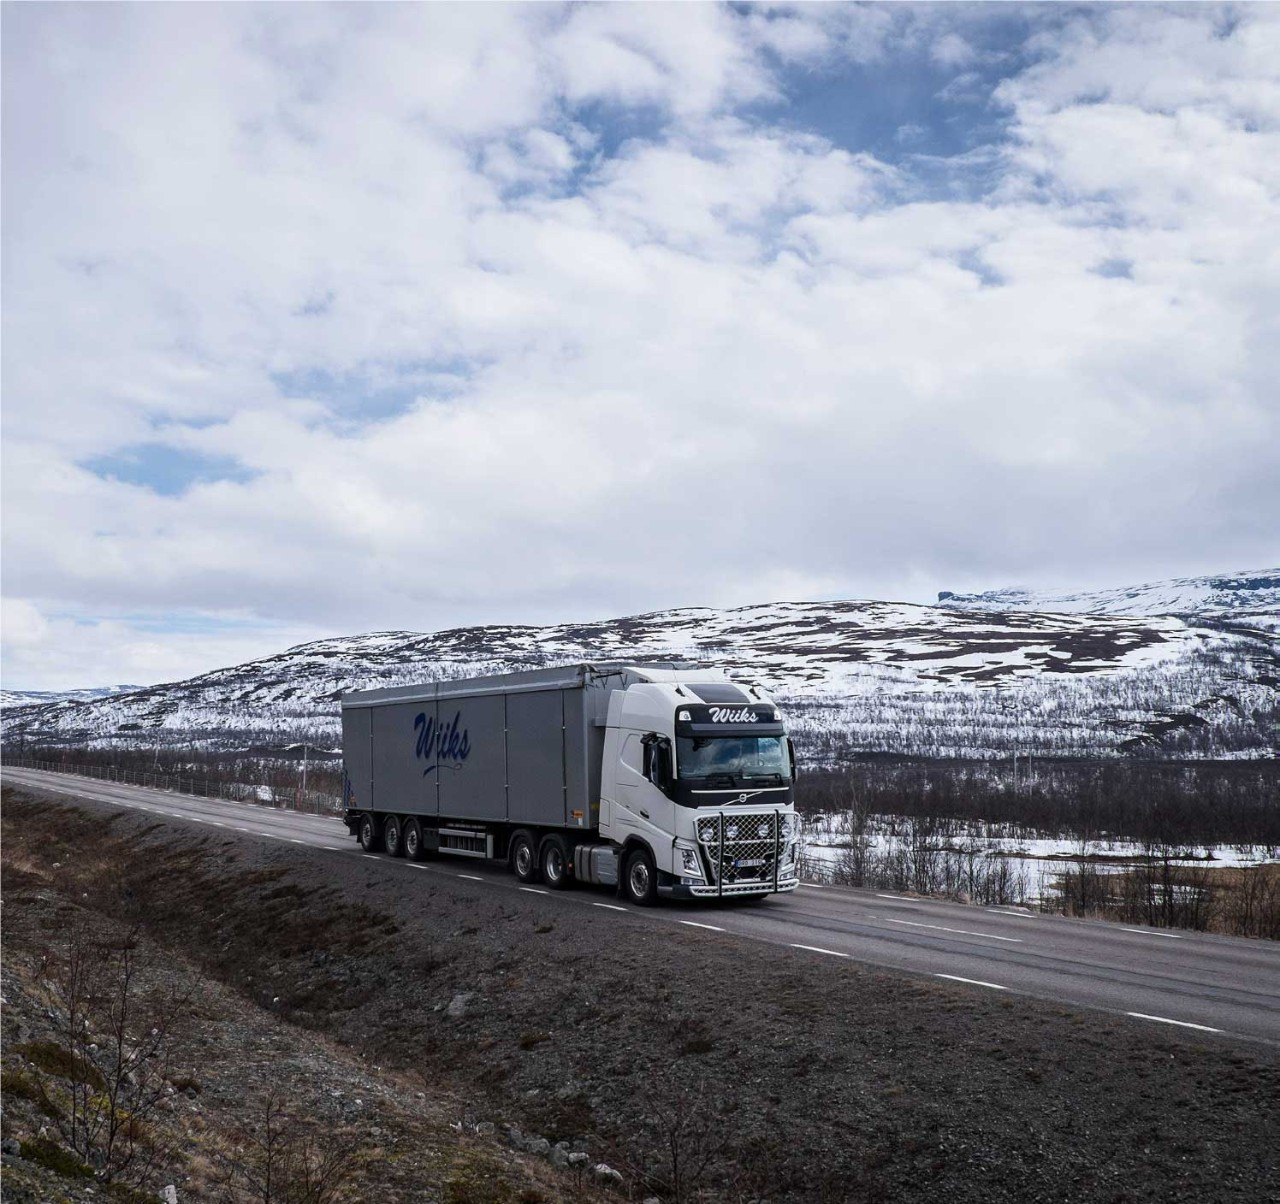 According to Lars Lindgren the truck, equipped with I-Shift Dual Clutch, maintains a steadier and higher speed, even on roads where the driving conditions are challenging.